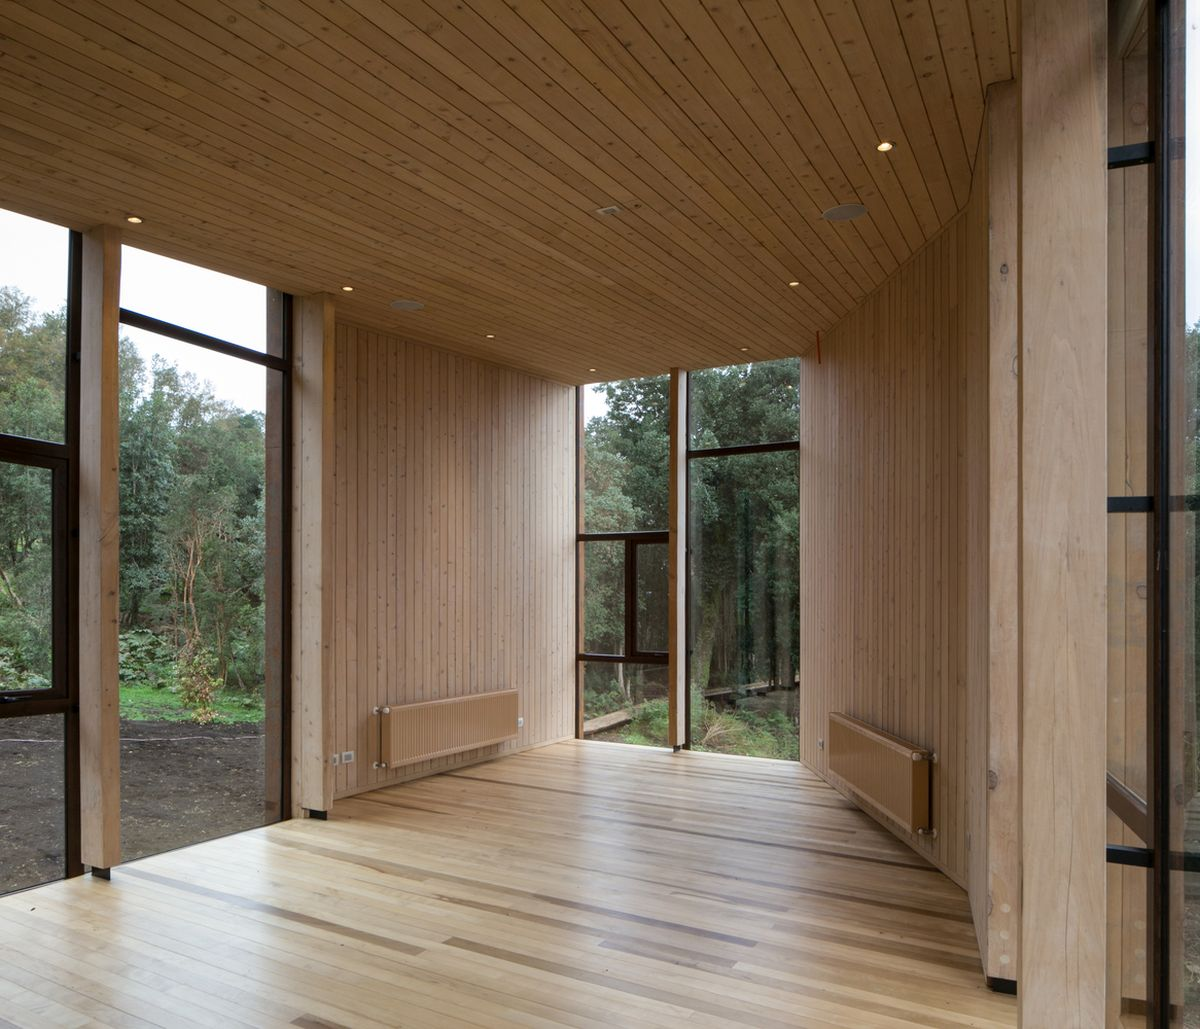 Warm wood covers the floor, ceiling and walls creating a very soothing and welcoming ambiance